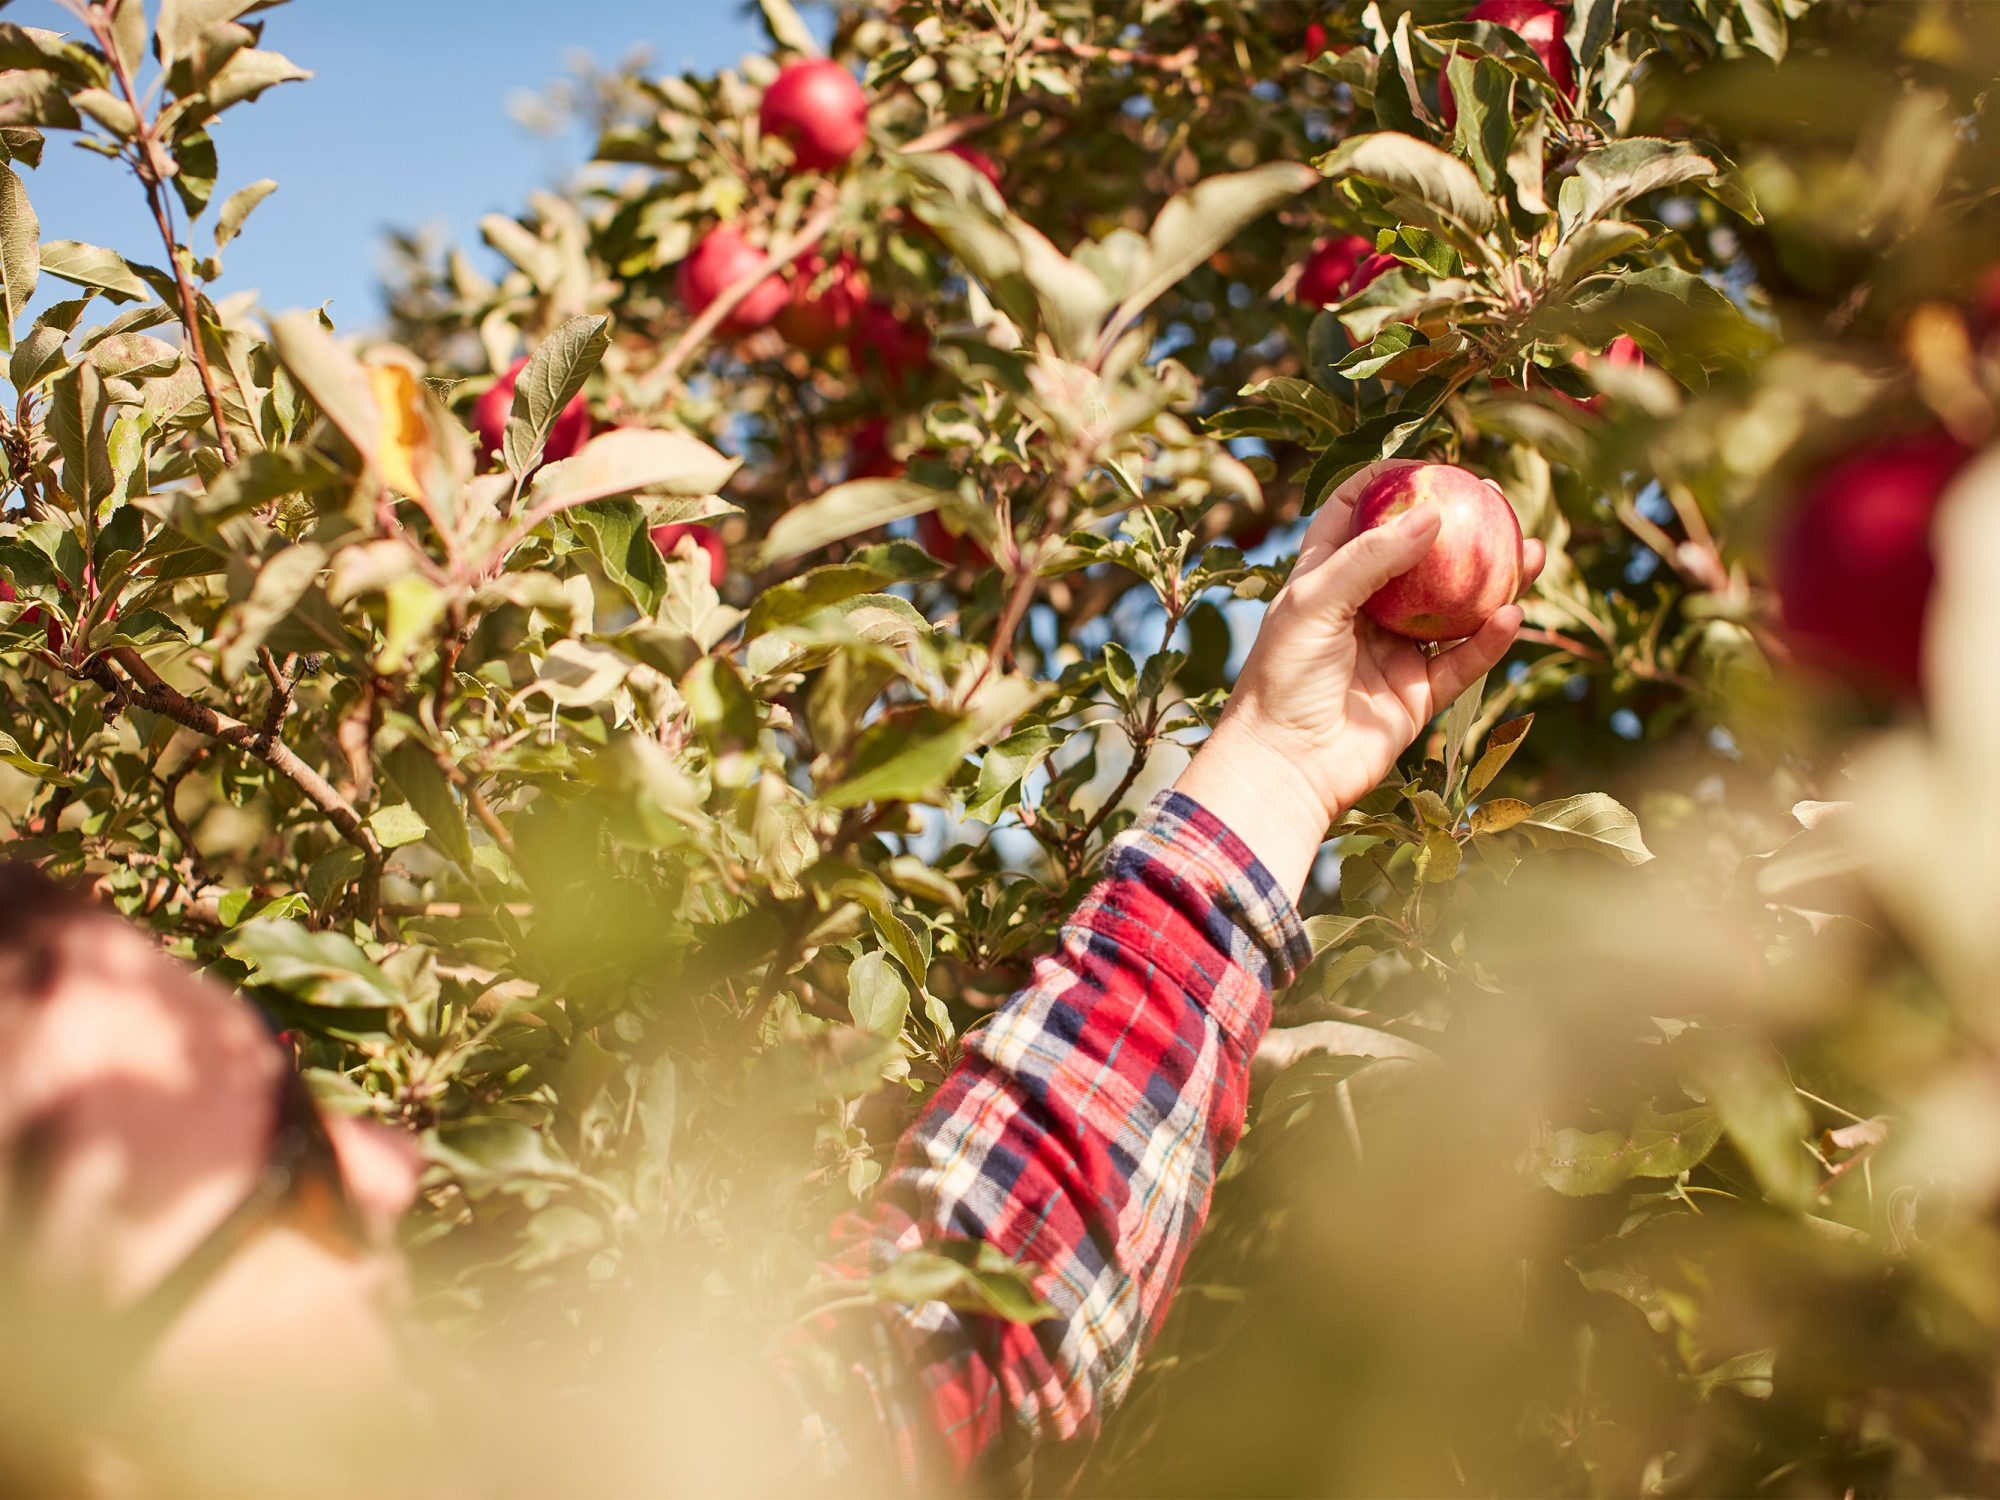 Woman reaching for apple in orchard